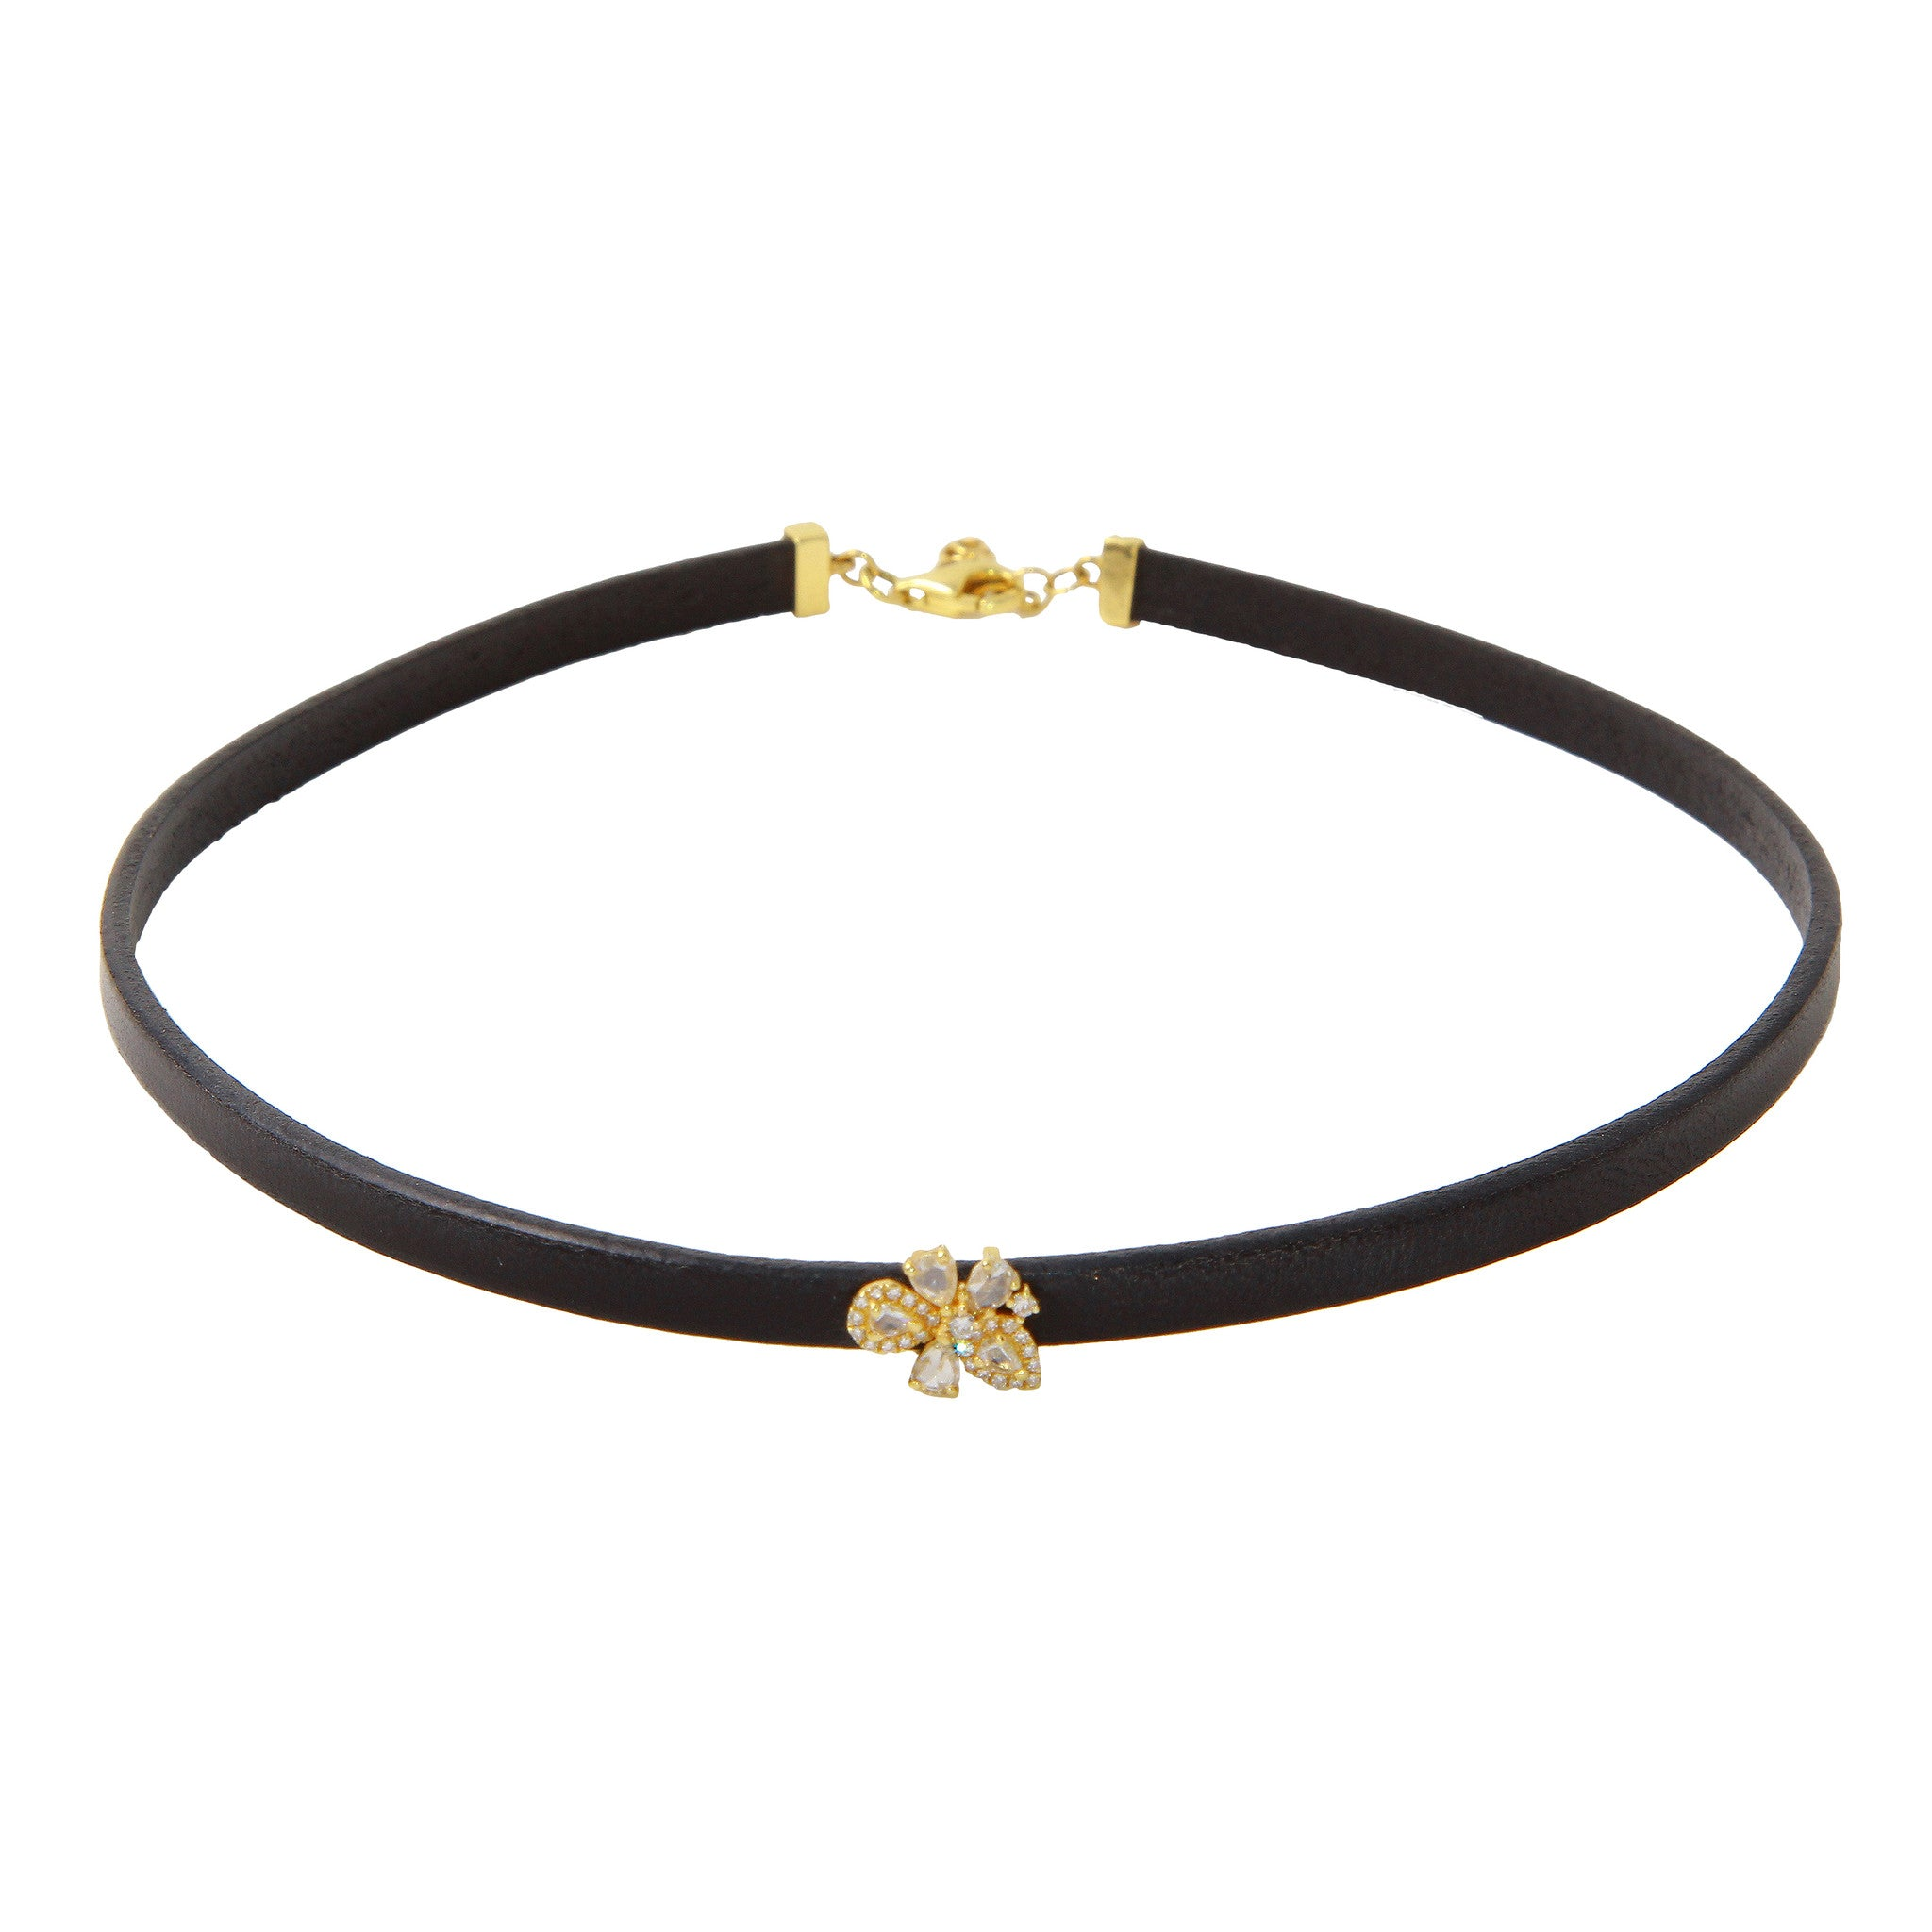 Black Leather Choker with Rose Cut Diamond Flower